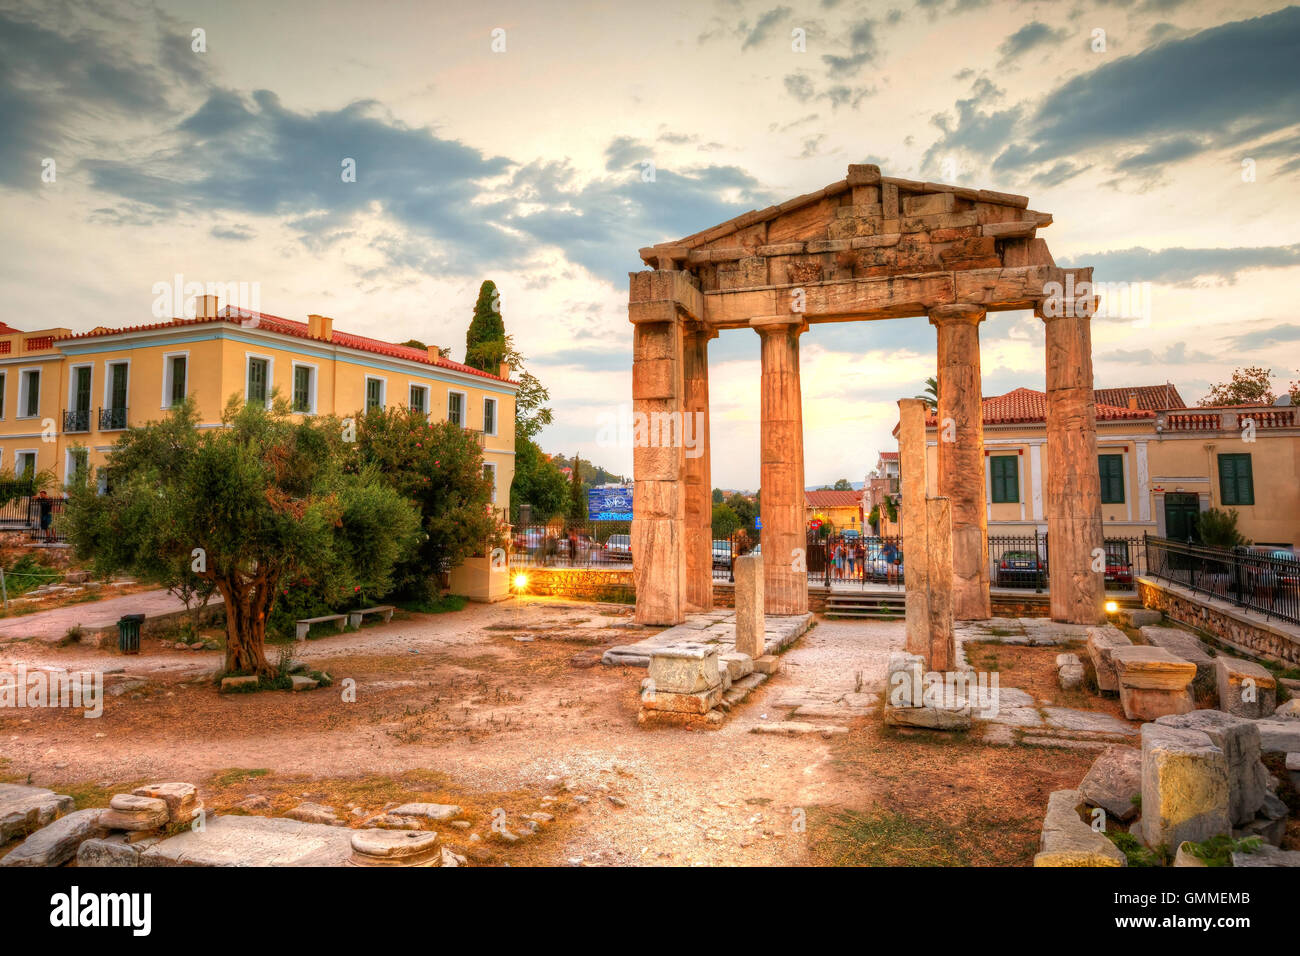 Remains of the Gate of Athena Archegetis and Roman Agora in Athens, Greece. HDR image - Stock Image